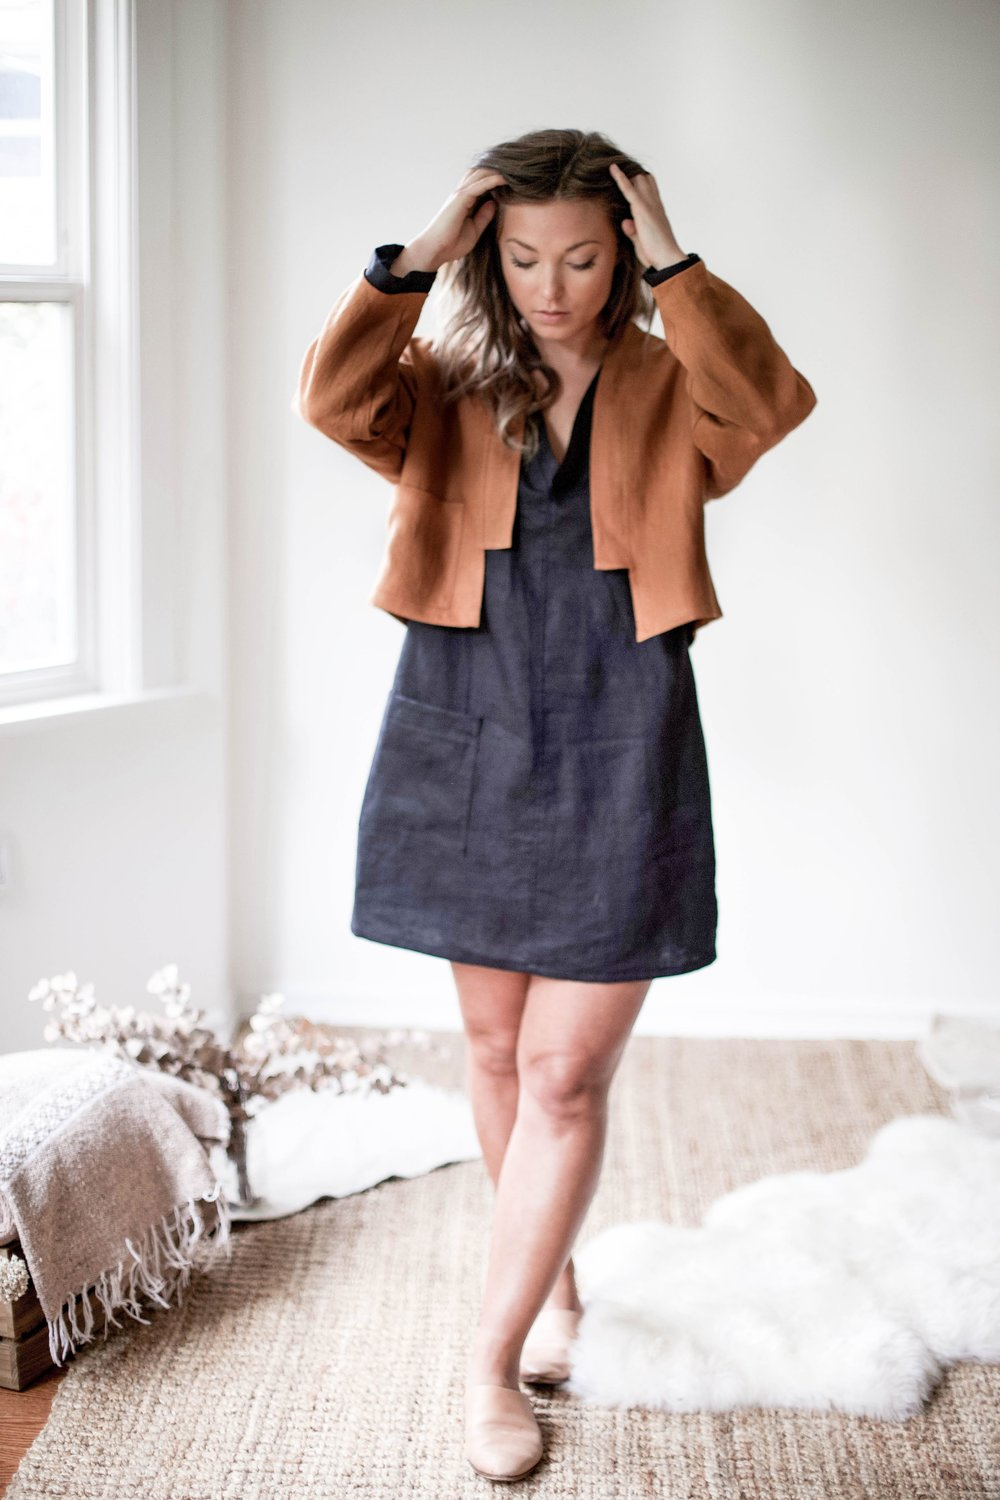 nomi-designs_ann-jacket_rust-colored-natural-linen-jacket_front-paired-with-ali-dress-and-mule-slides.jpg